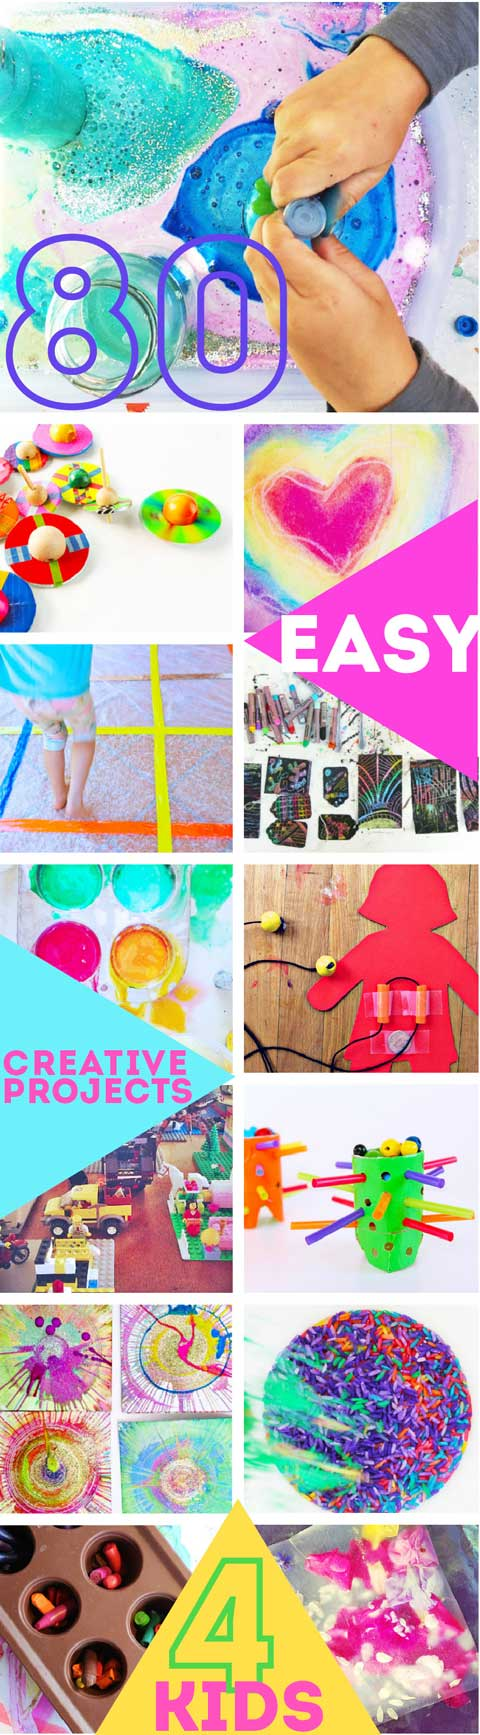 80 Easy Creative Projects for Kids including activities, art, crafts, science, engineering and toys! Projects perfect for kids ages 3-8.